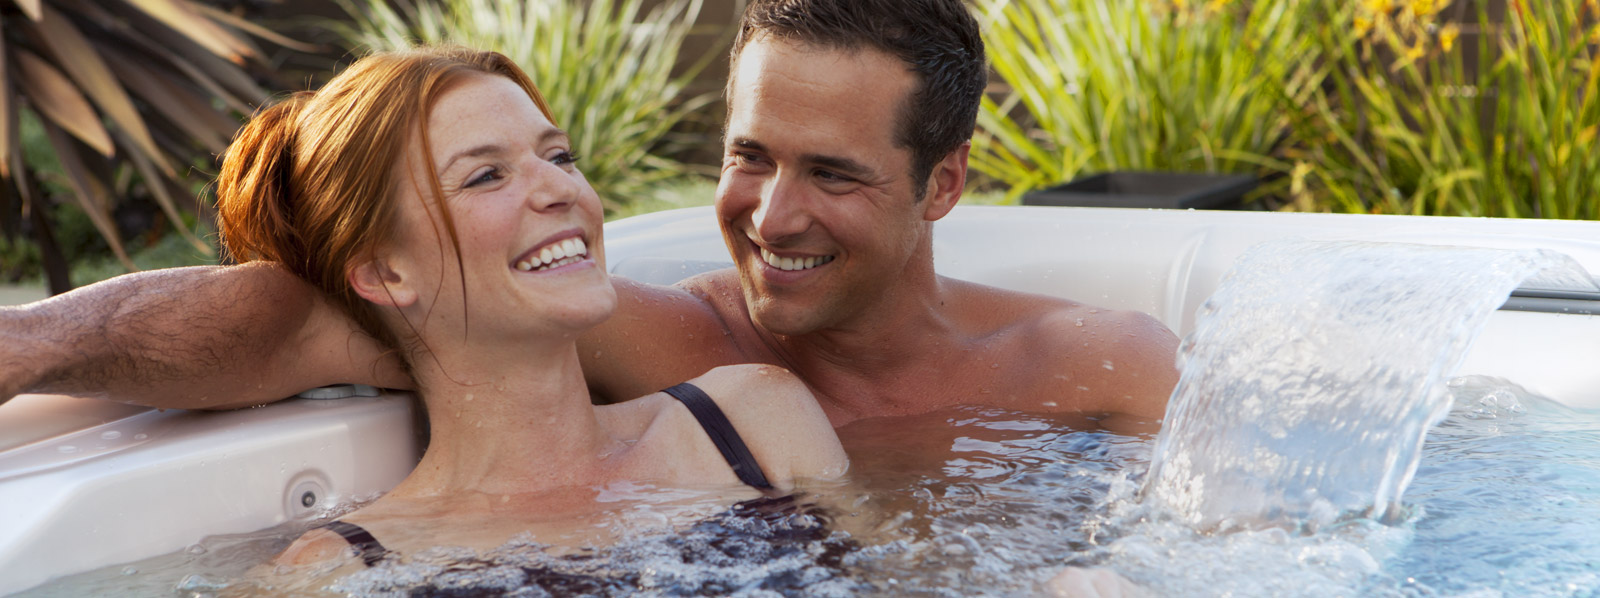 Can Hot Tubs Help Prevent Illness?